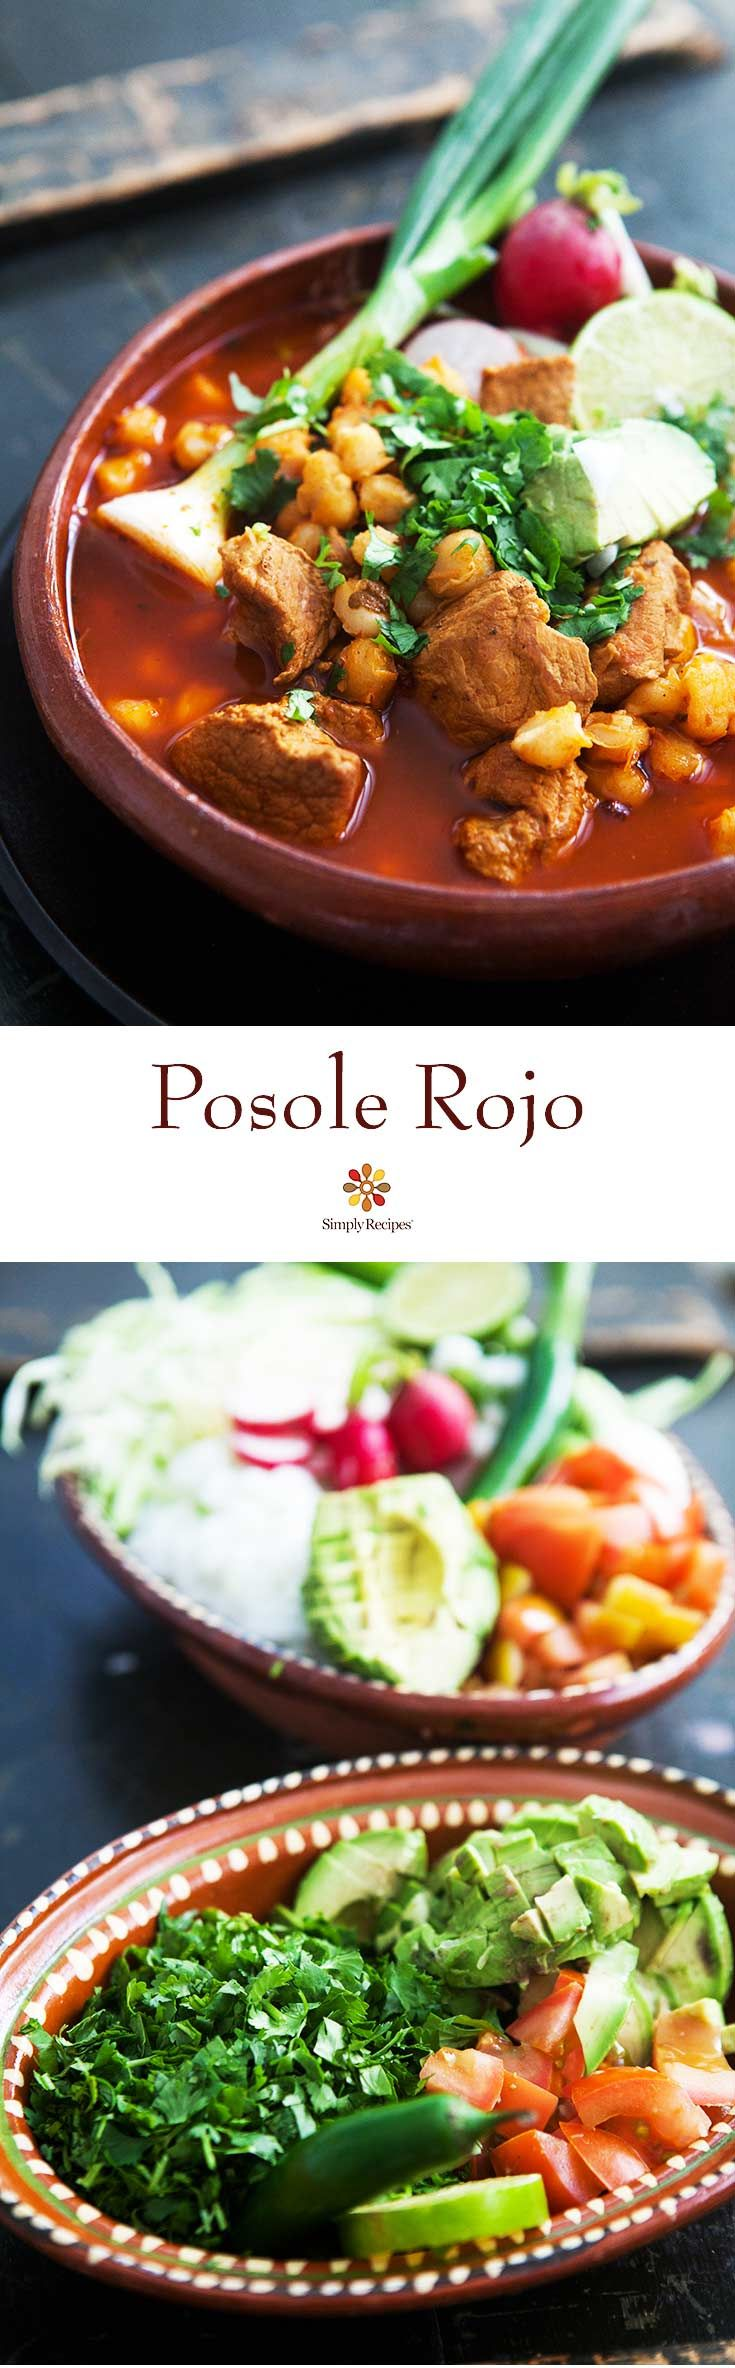 Pozole Rojo - Broth rich Mexican soup made with pork, red chiles, and lots of add-ins like shredded cabbage, radishes, cilantro, lime, and avocado. #MexicanFood #Posole #Pozole #Hominy #Soup